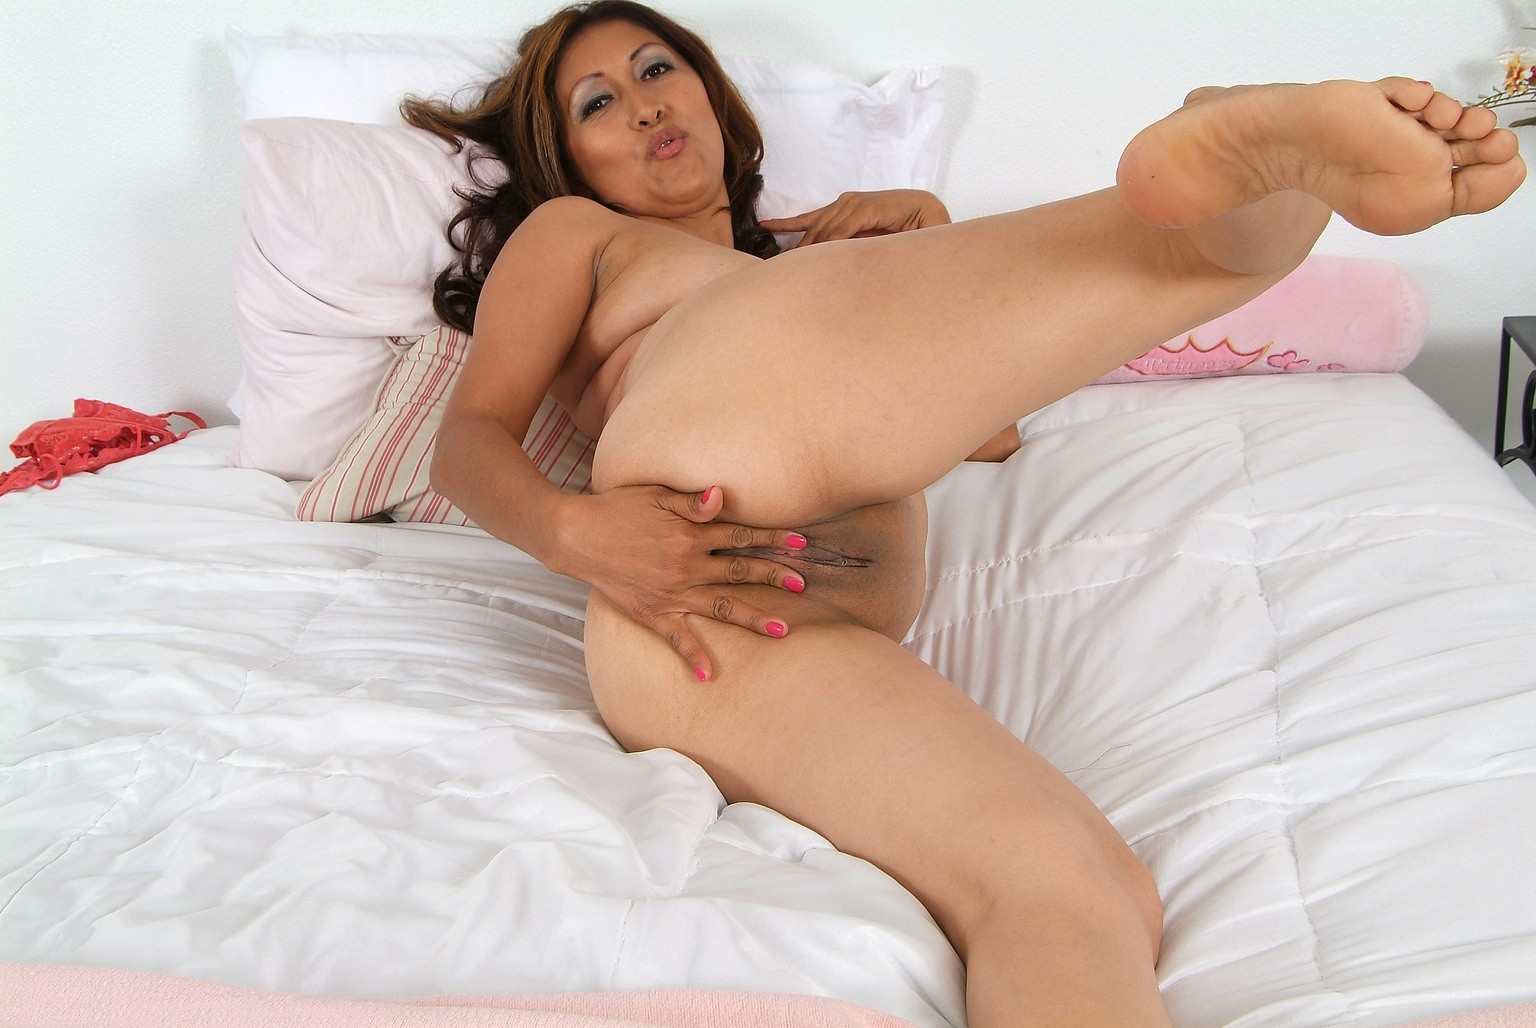 Mature latina cream pies